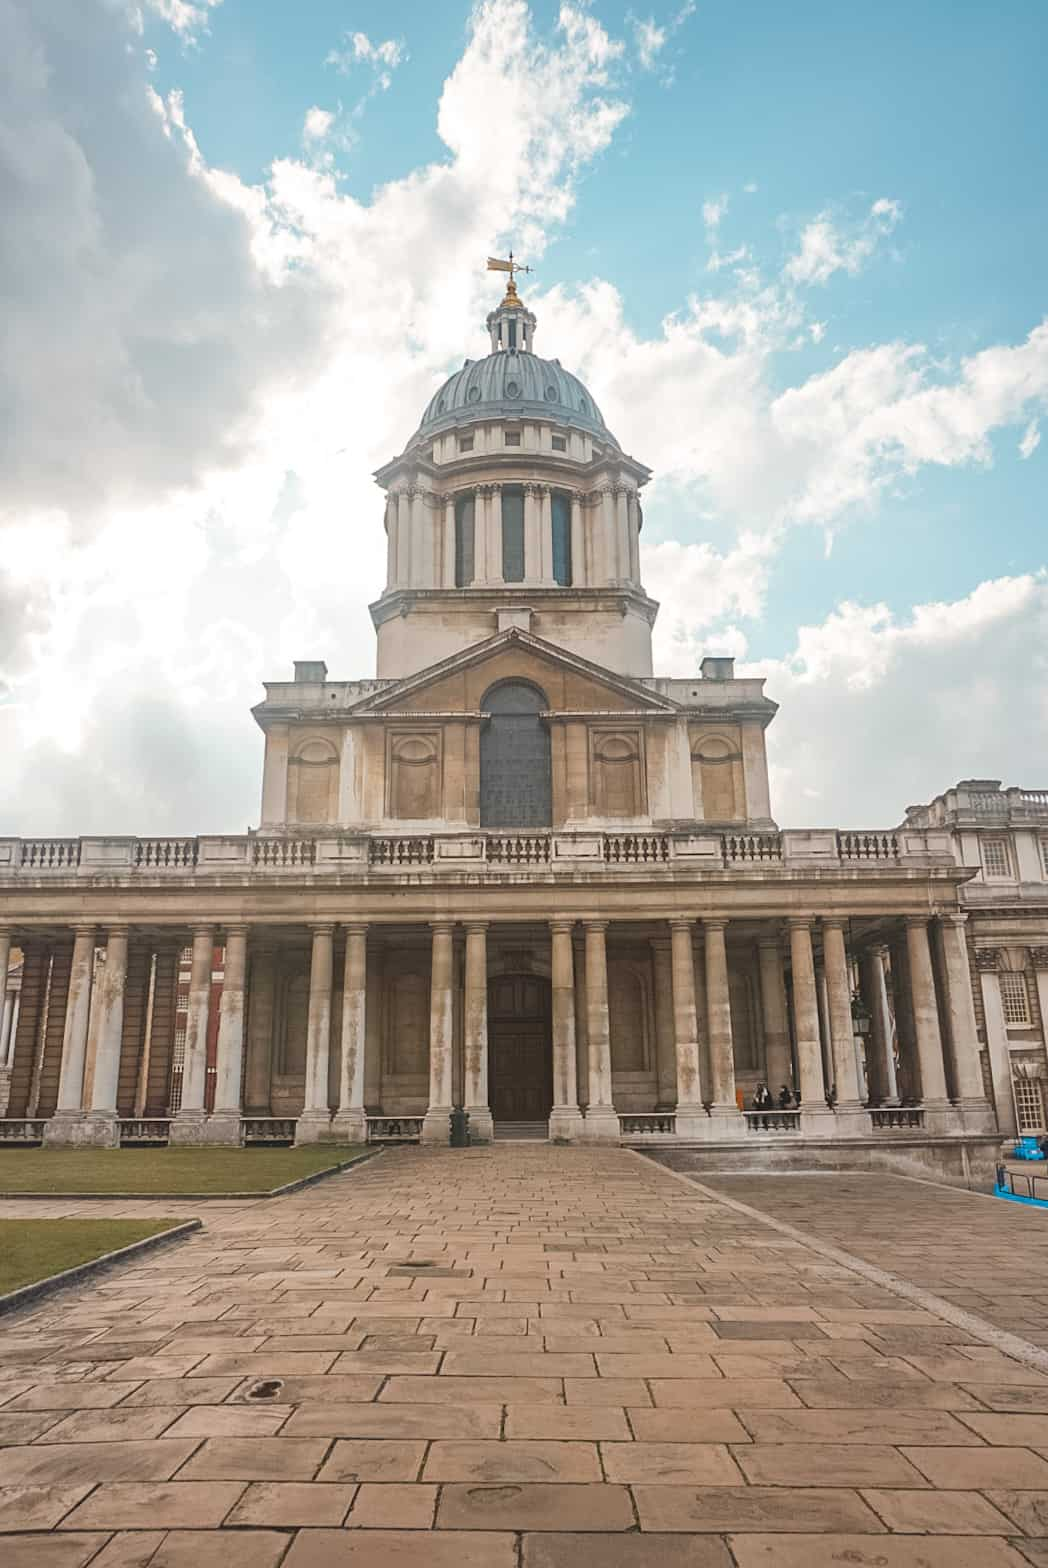 Building at Old Royal Naval College, Greenwich London